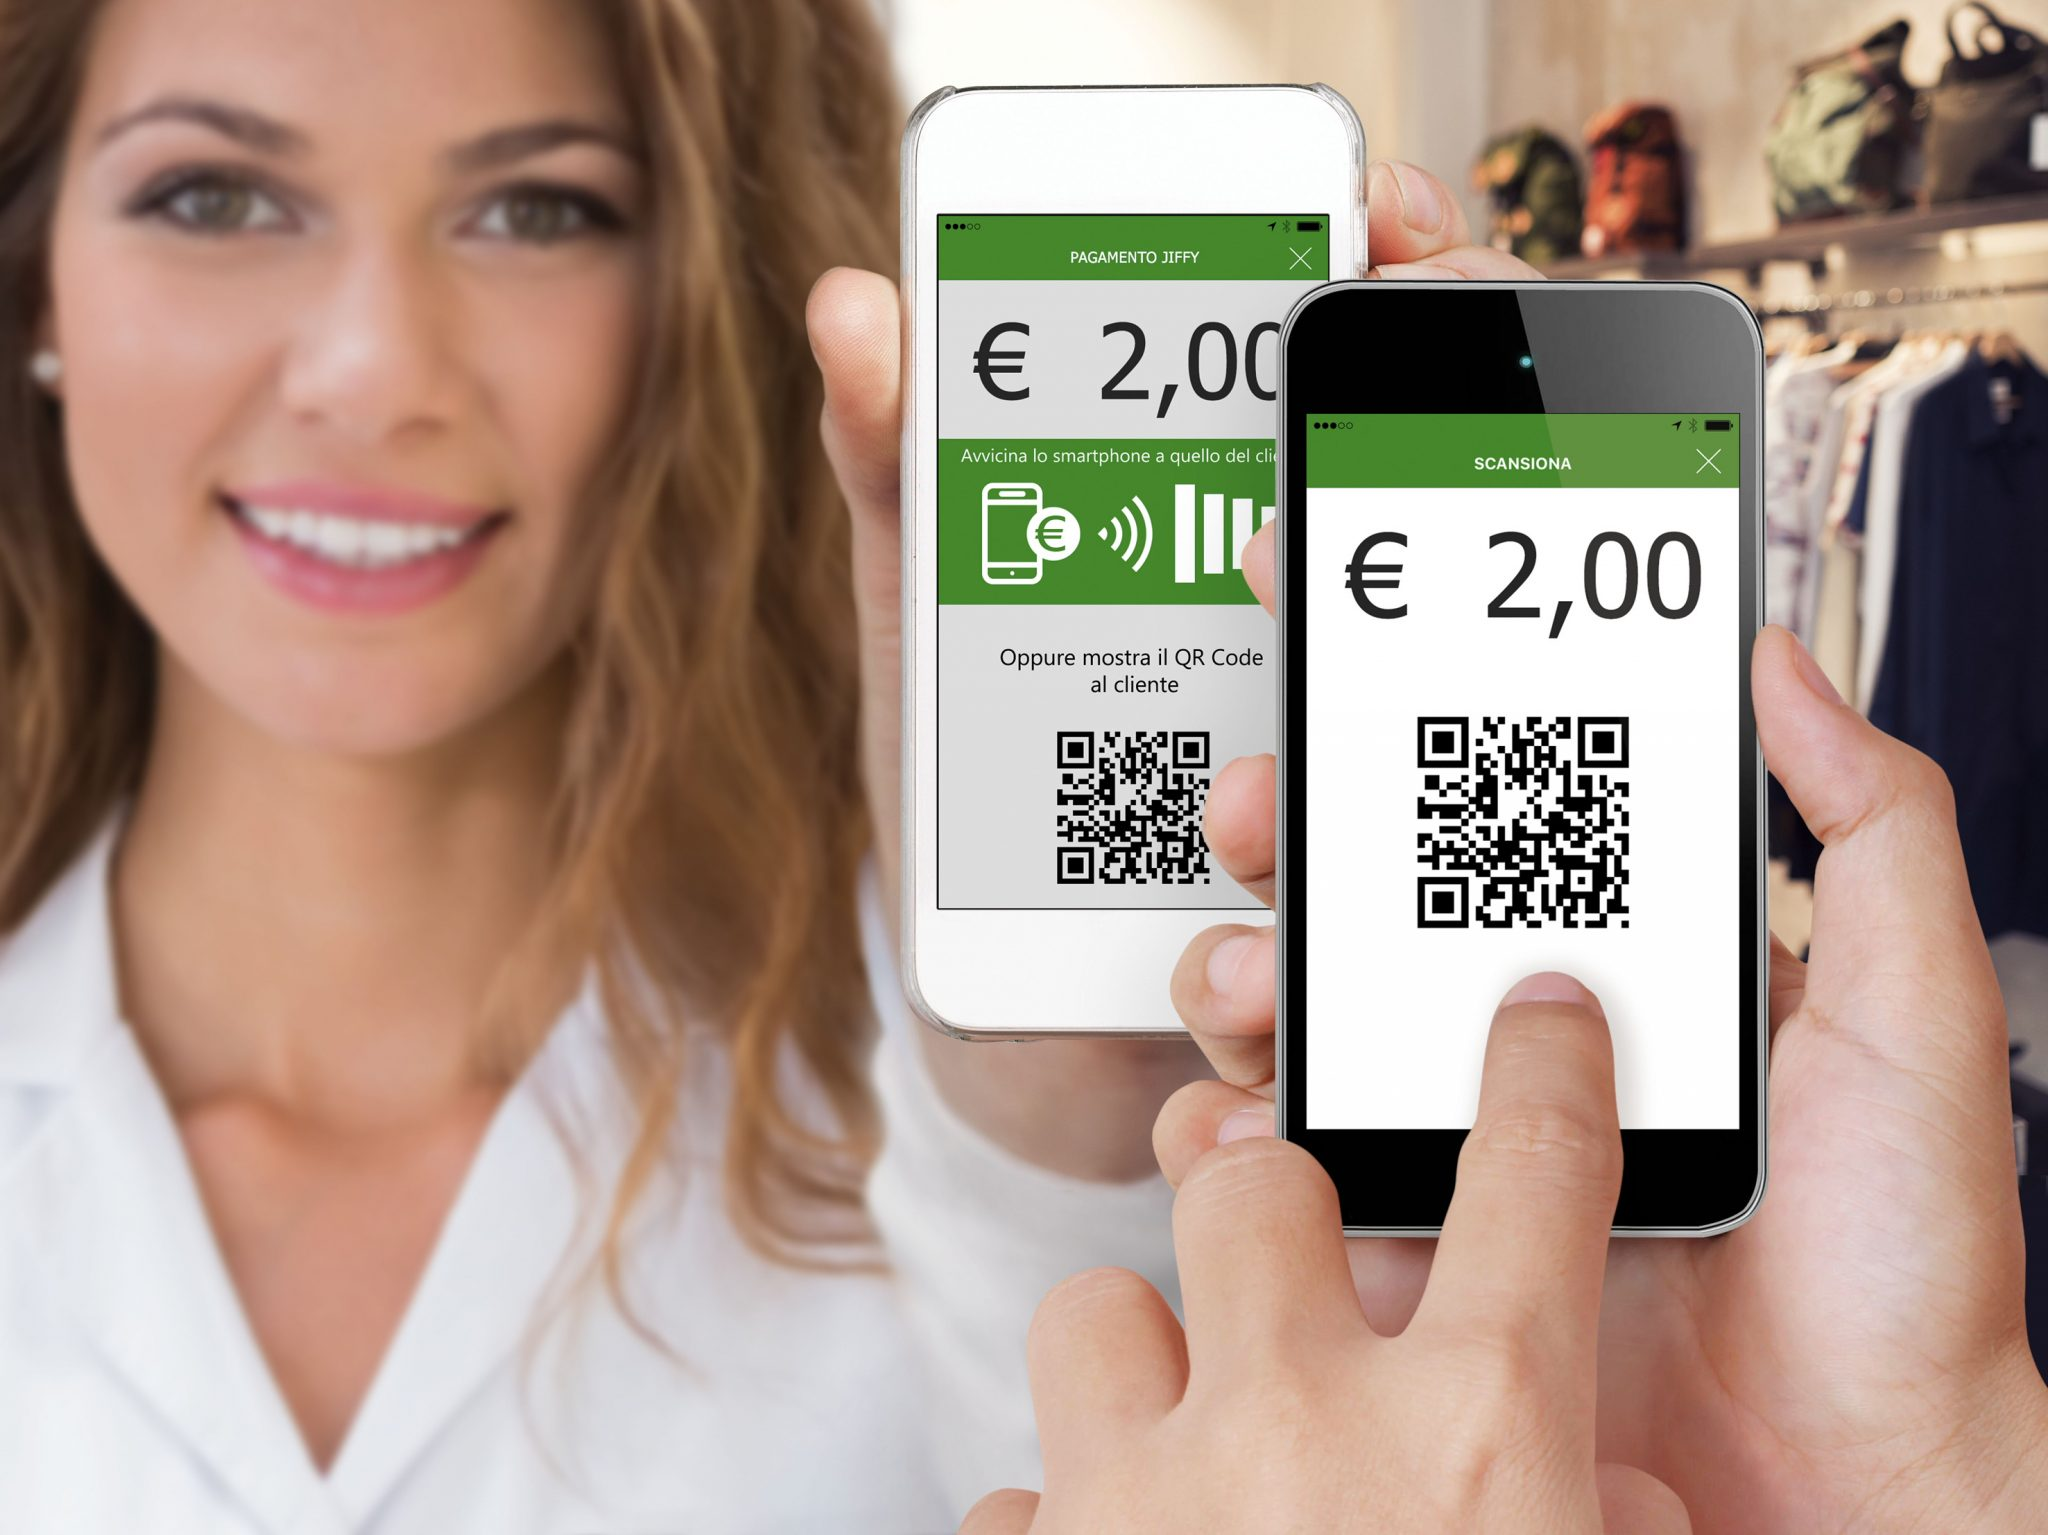 SIA's mobile payments service Jiffy does the Italian job